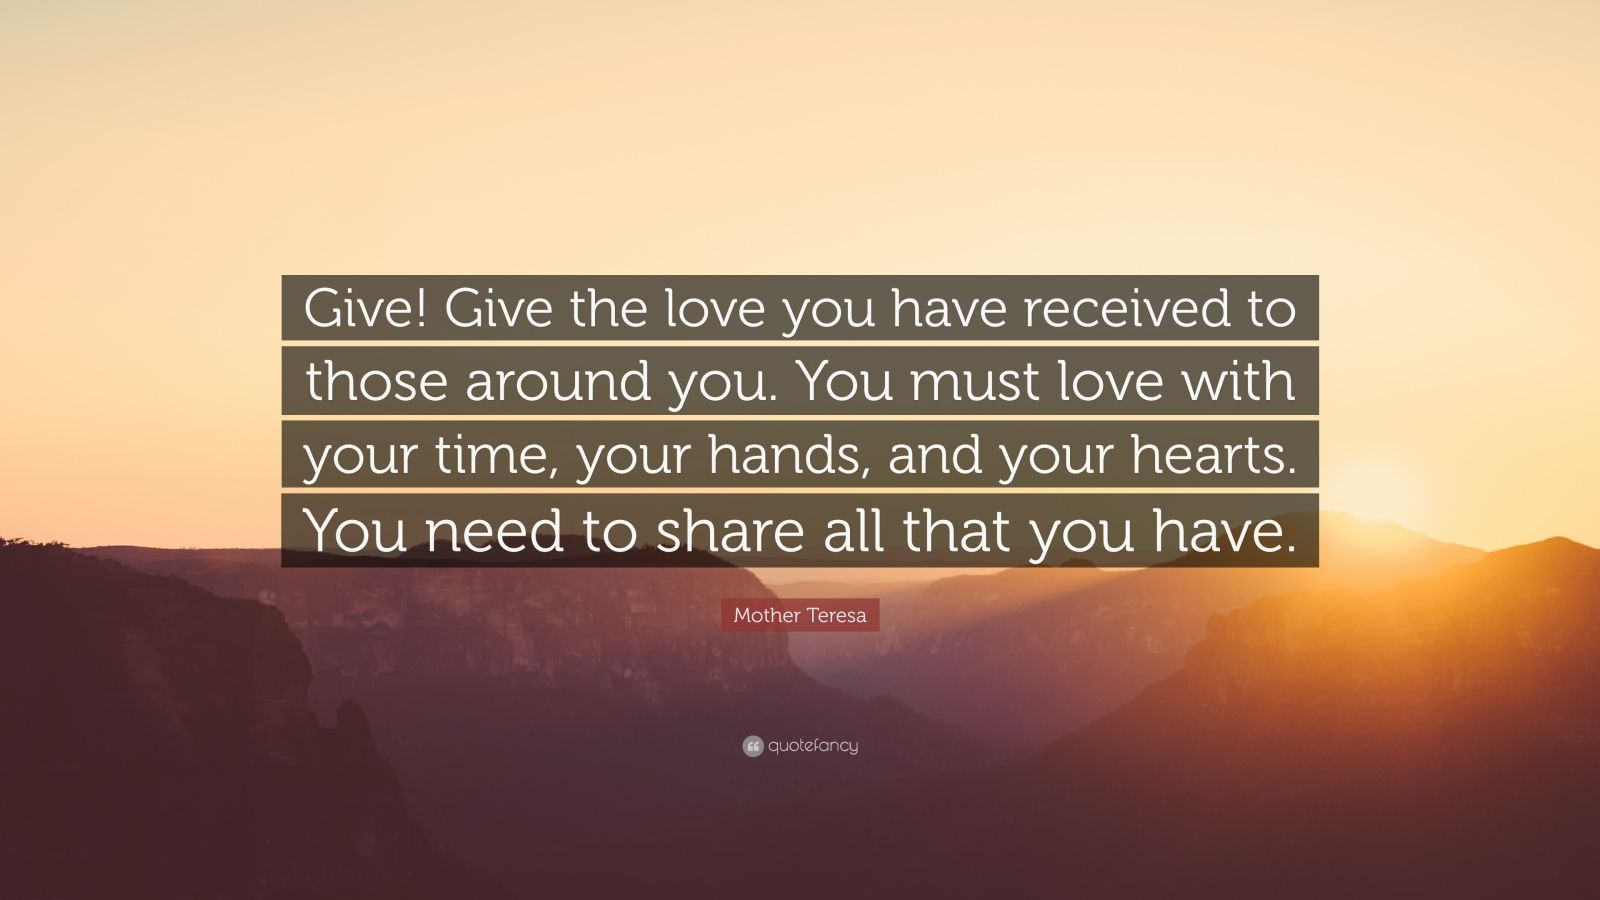 "Mother Teresa Quote: ""Give! Give the love you have received to those around you. You must love with your time, your hands, and your hearts. You need to share all that you have."""